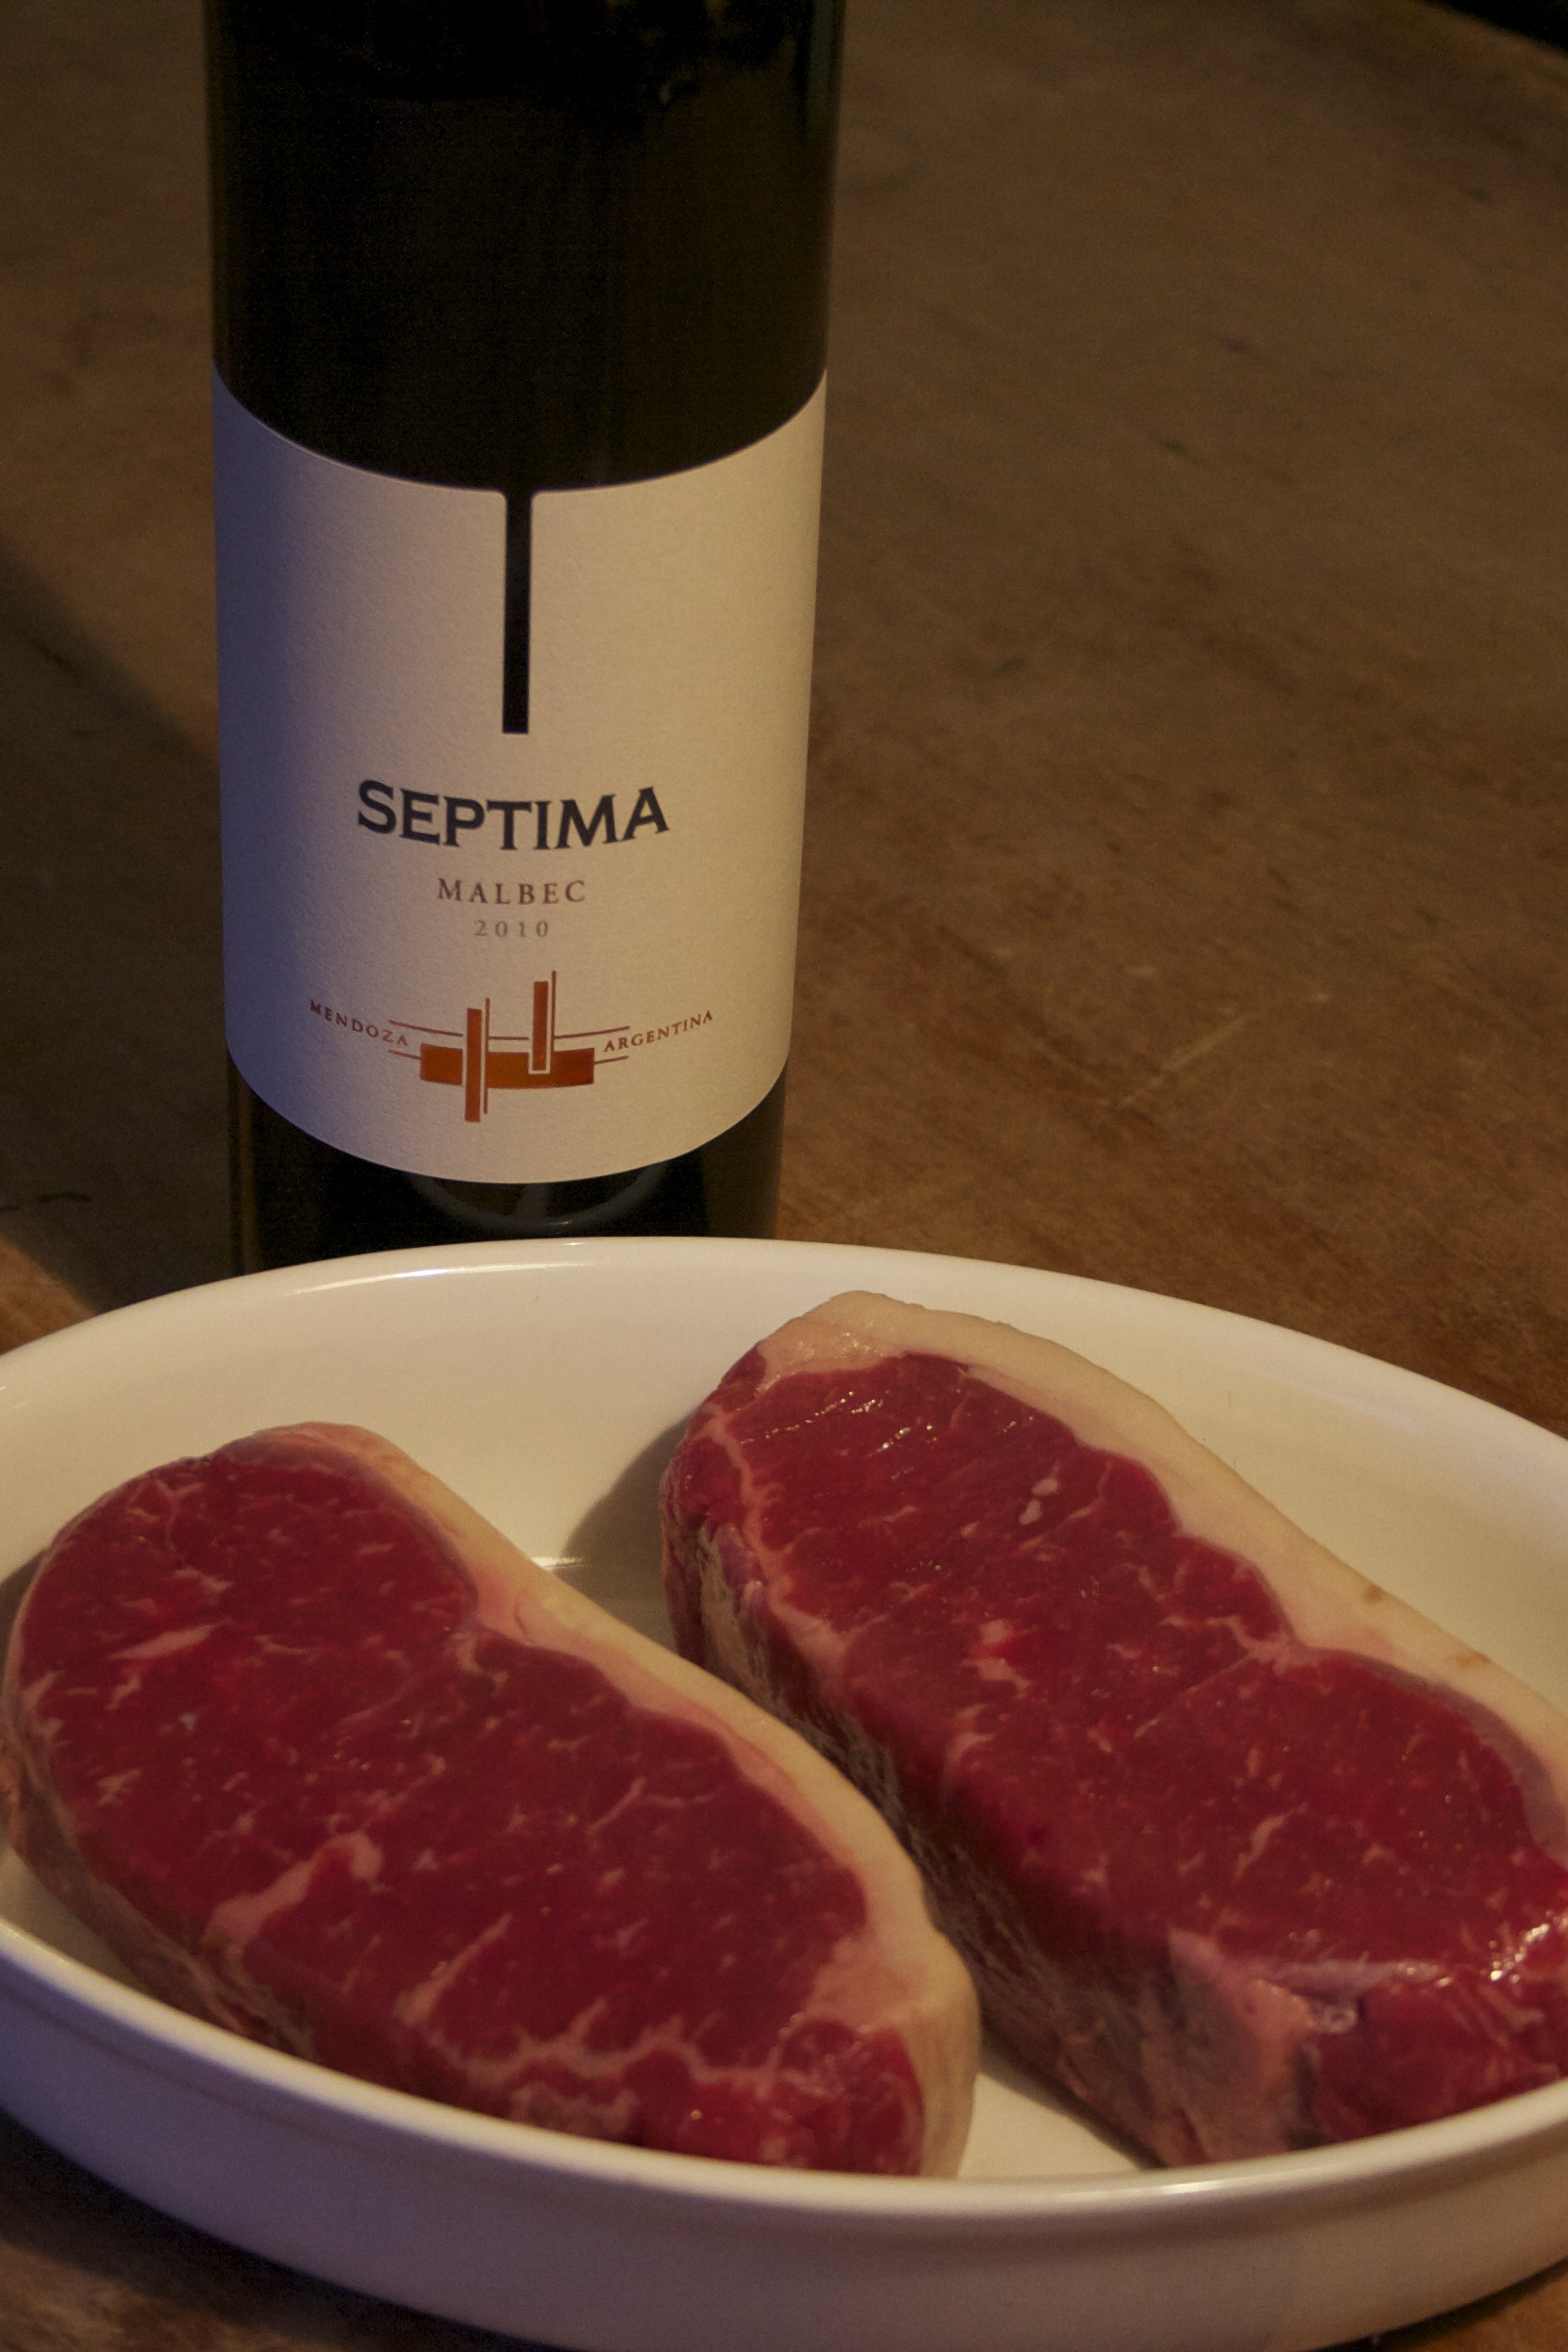 Bottle of Septima Malbe 2010 and two steaks from Argentina